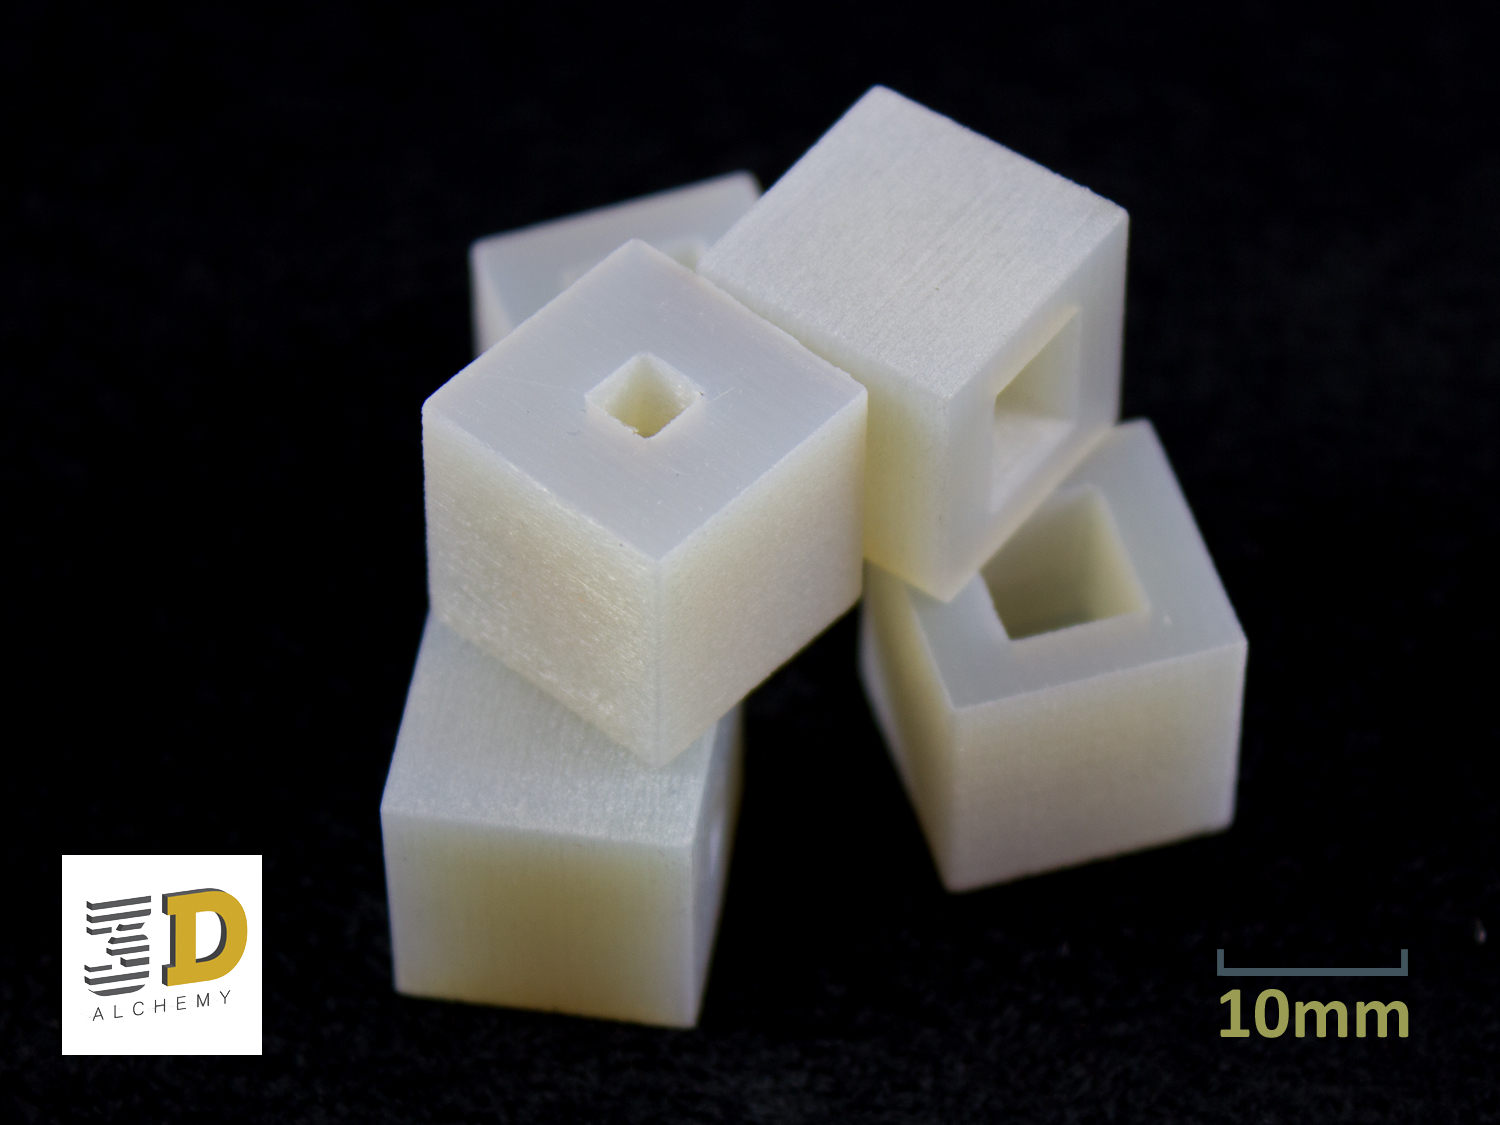 3D Printed parts in Polypropylene Like material.